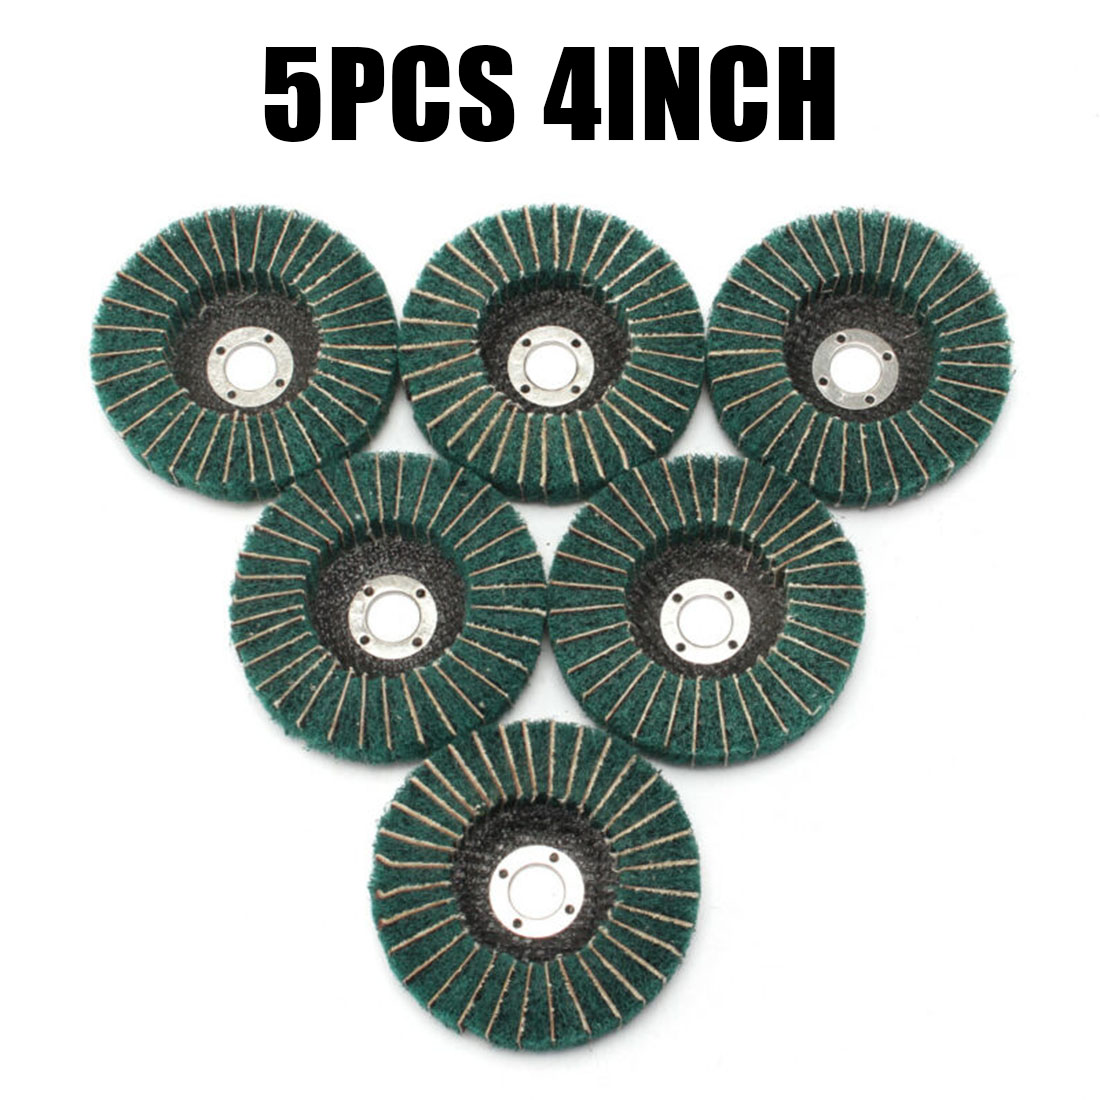 5Pcs 4inch Nylon Fiber Flap Wheel Disc 100mm Abrasive Polishing Buffing Pads Heat Dissipation And Self-sharpening